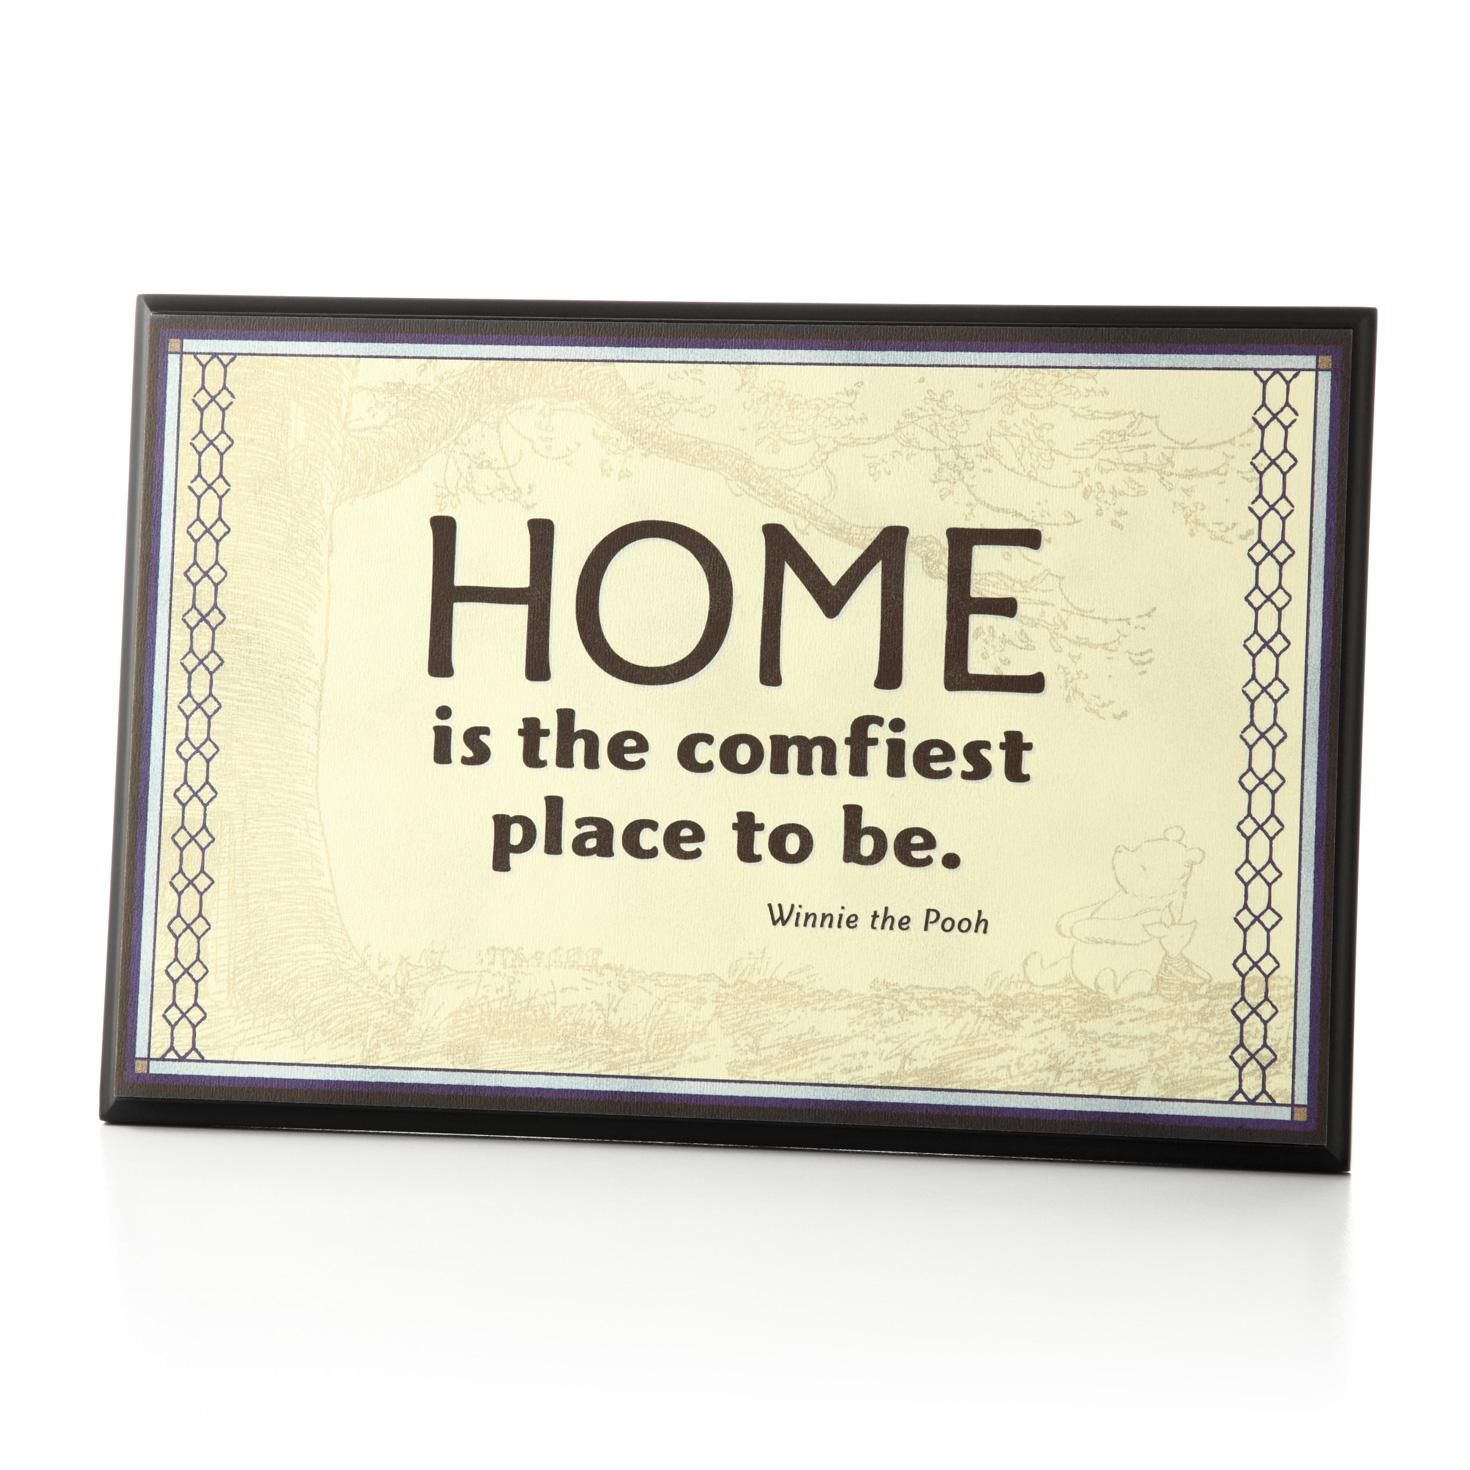 Disney Quote Plaques: Home Is The Comfiest Place To Be Plaque